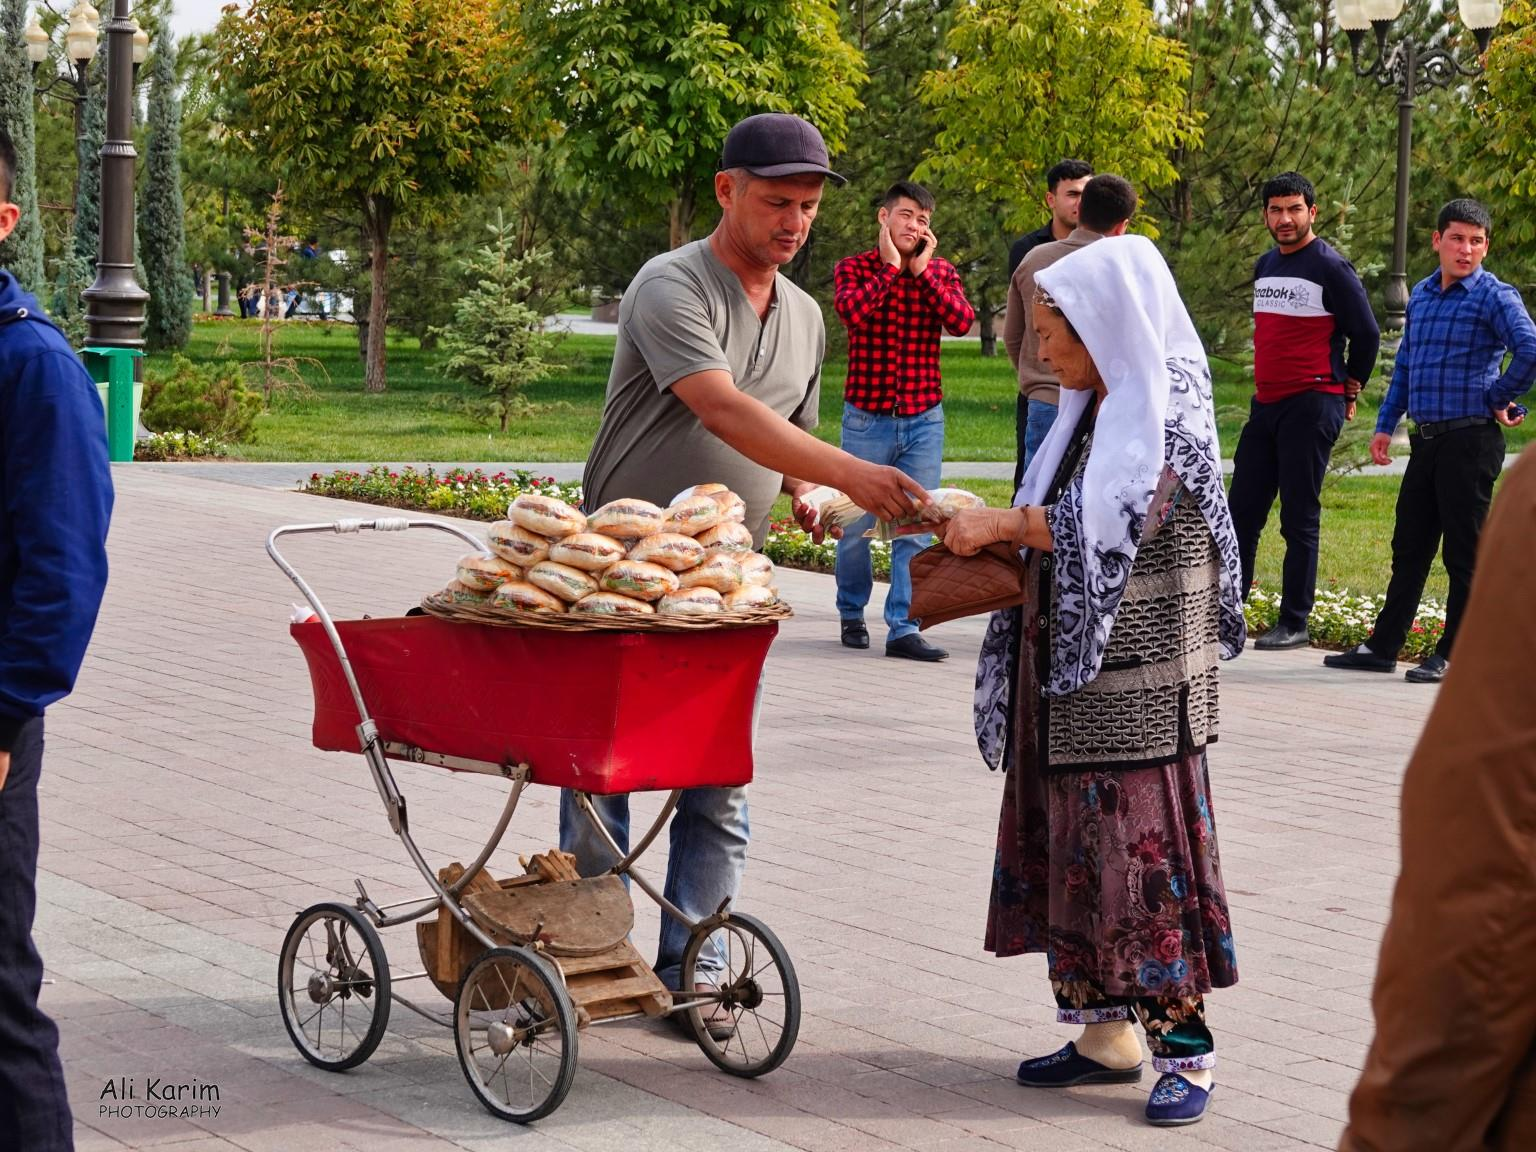 More Samarkand, Those prams come in very handy for sandwiches-on-the-go trade